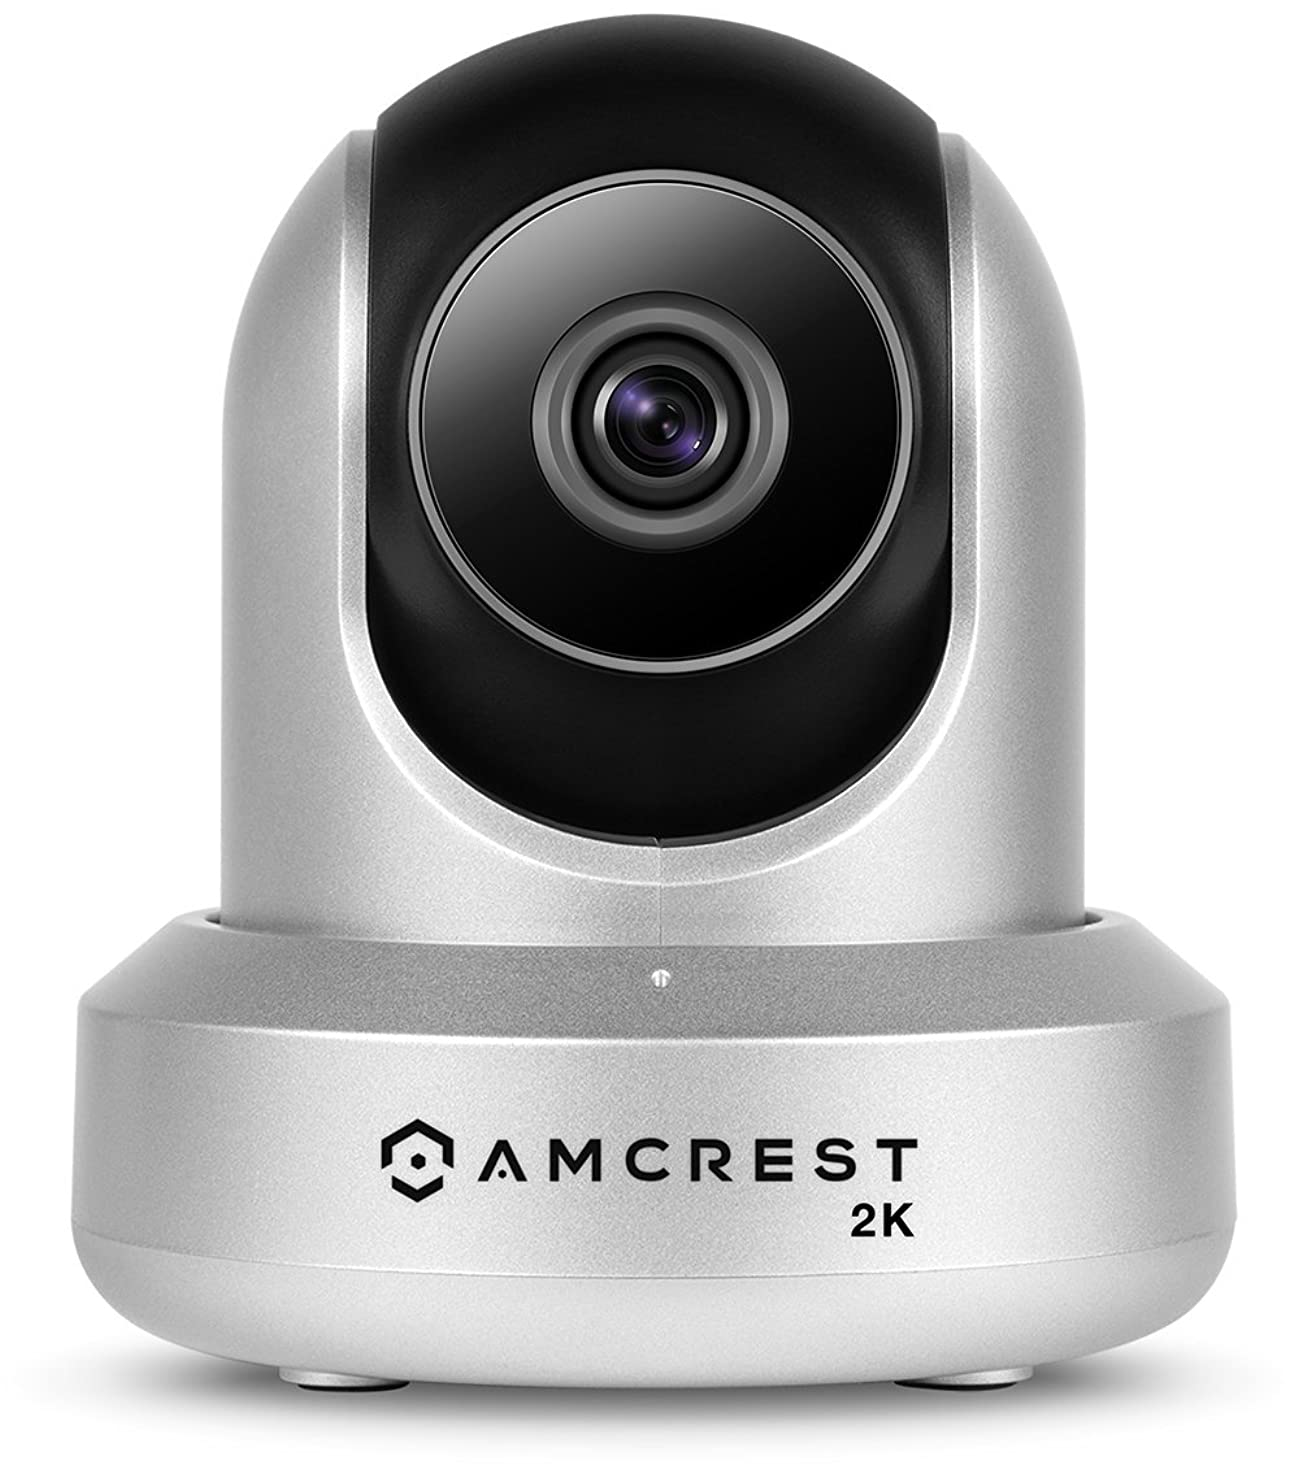 Amcrest UltraHD 2K WiFi Camera 3MP (2304TVL) Dualband 5ghz / 2.4ghz Indoor Pan/Tilt/Zoom Surveillance Wireless IP Camera, Home Video Security System w/IR Night Vision, Two-Way Talk IP3M-941 (Silver)